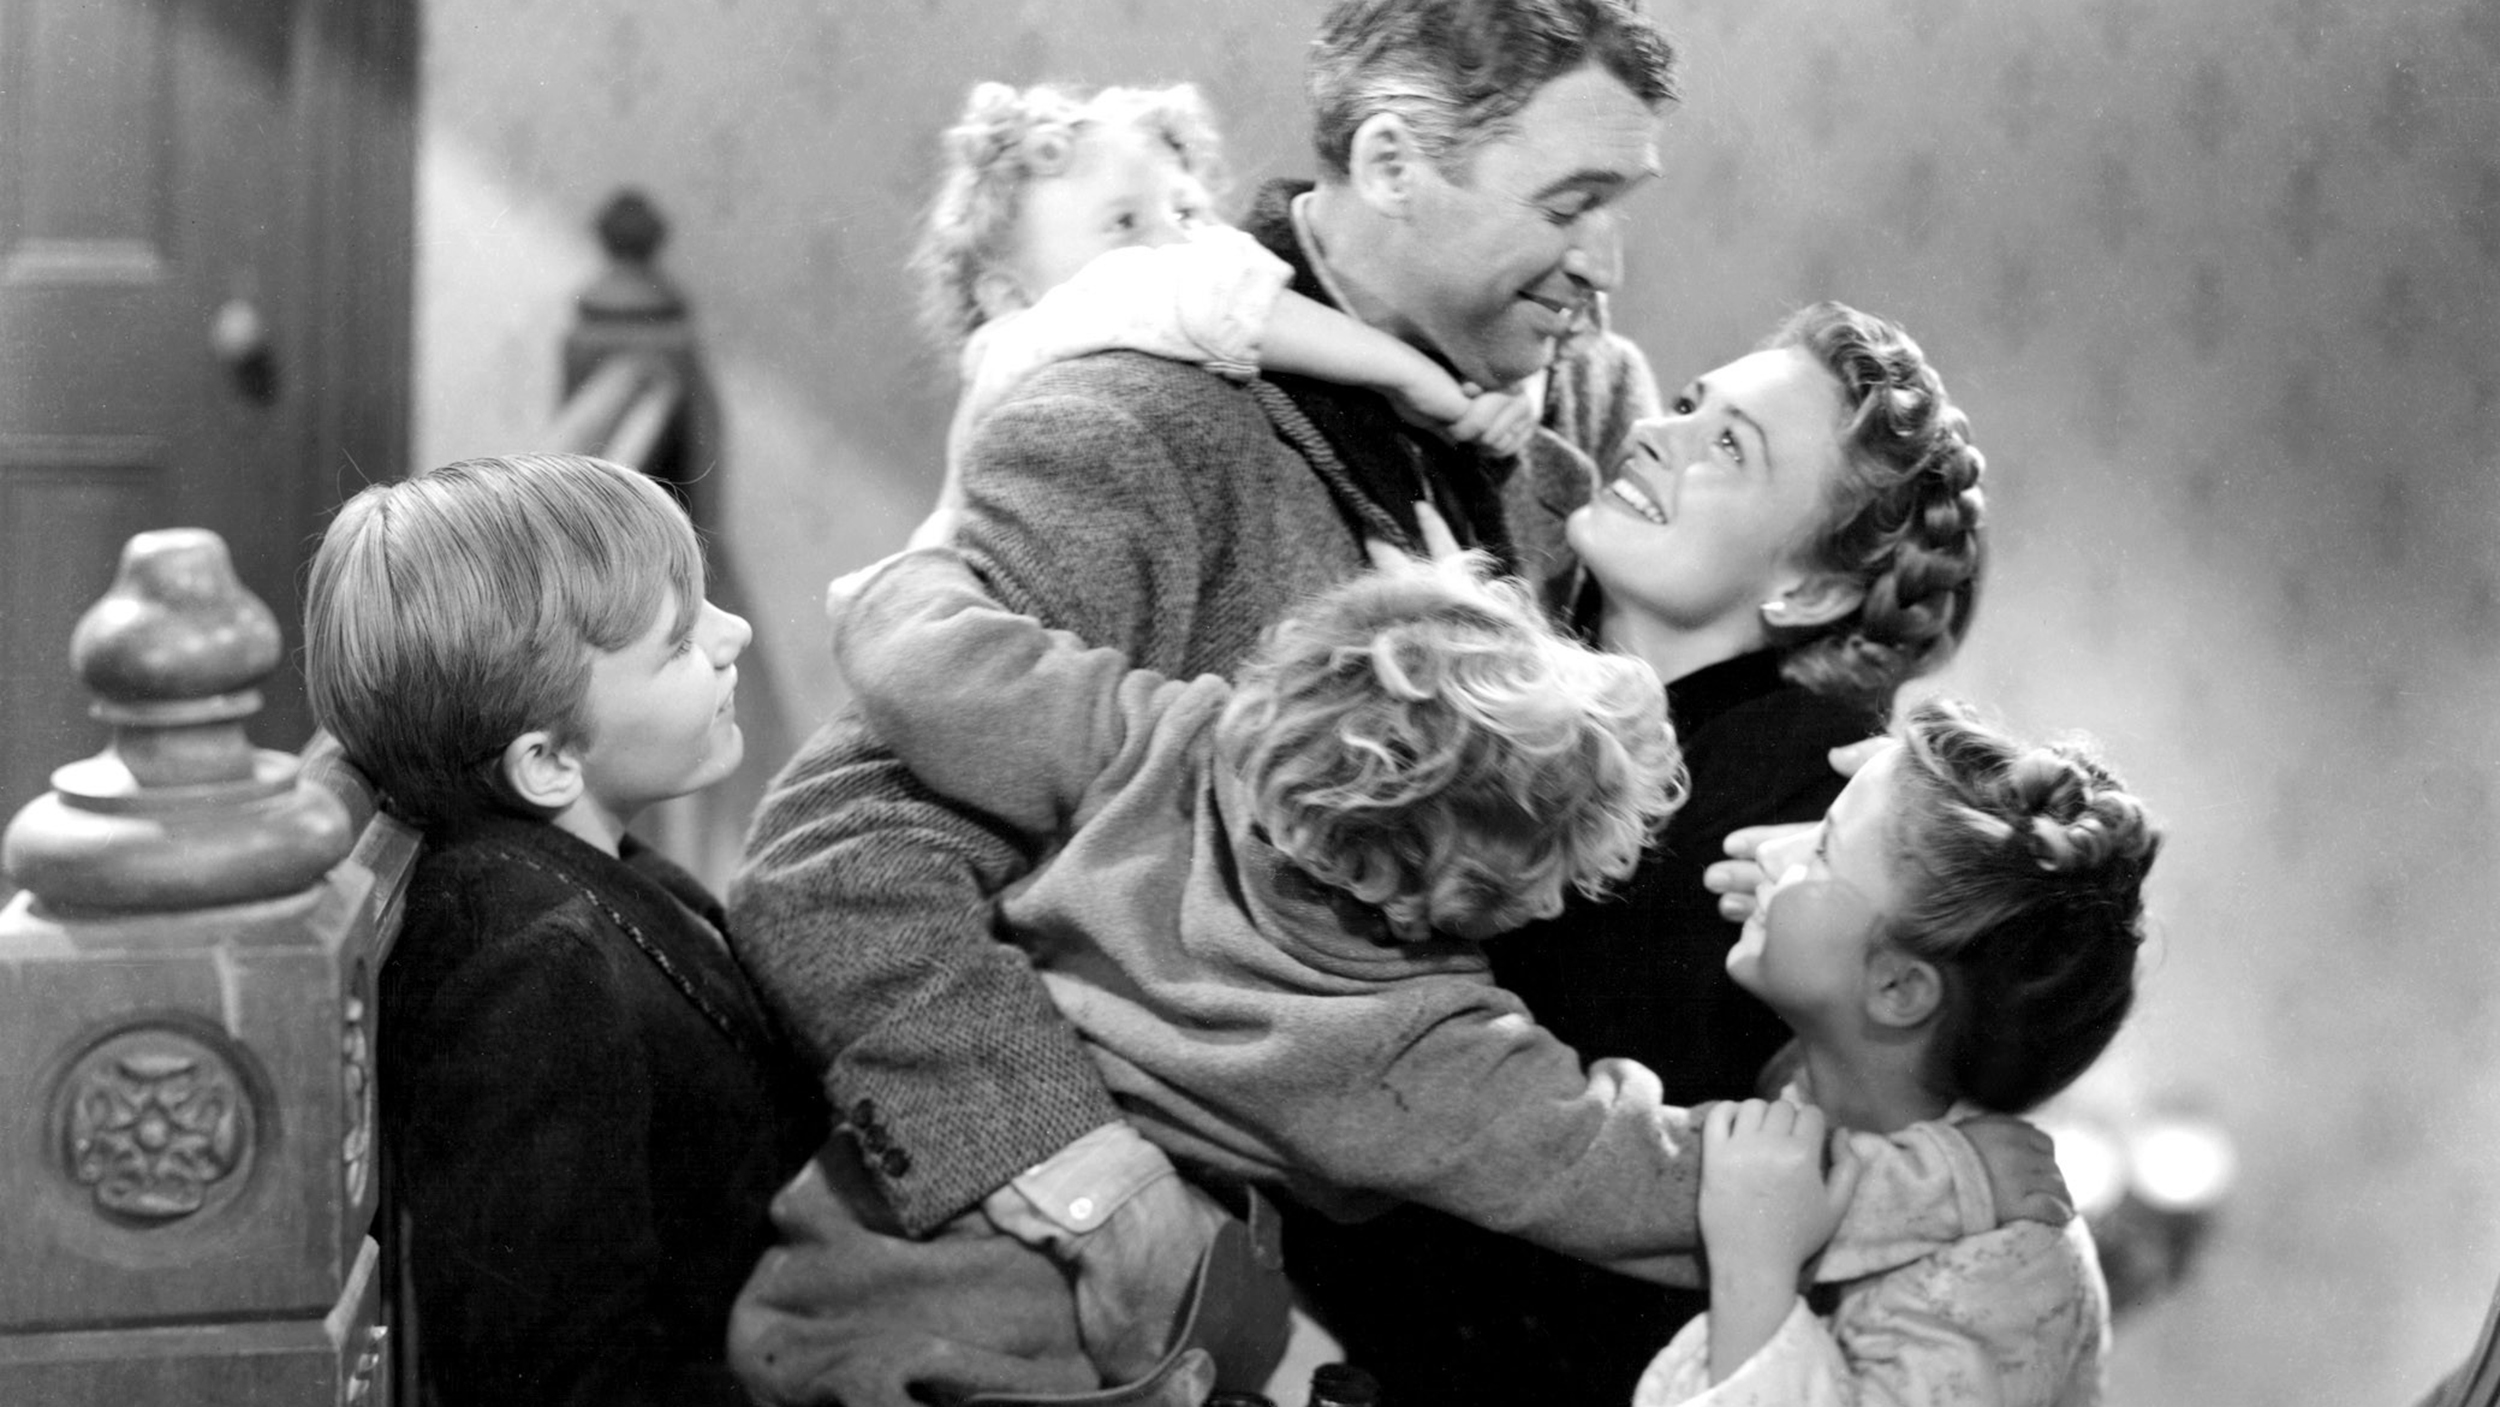 'It's A Wonderful Life' Turns 70! Here Are 7 Things You